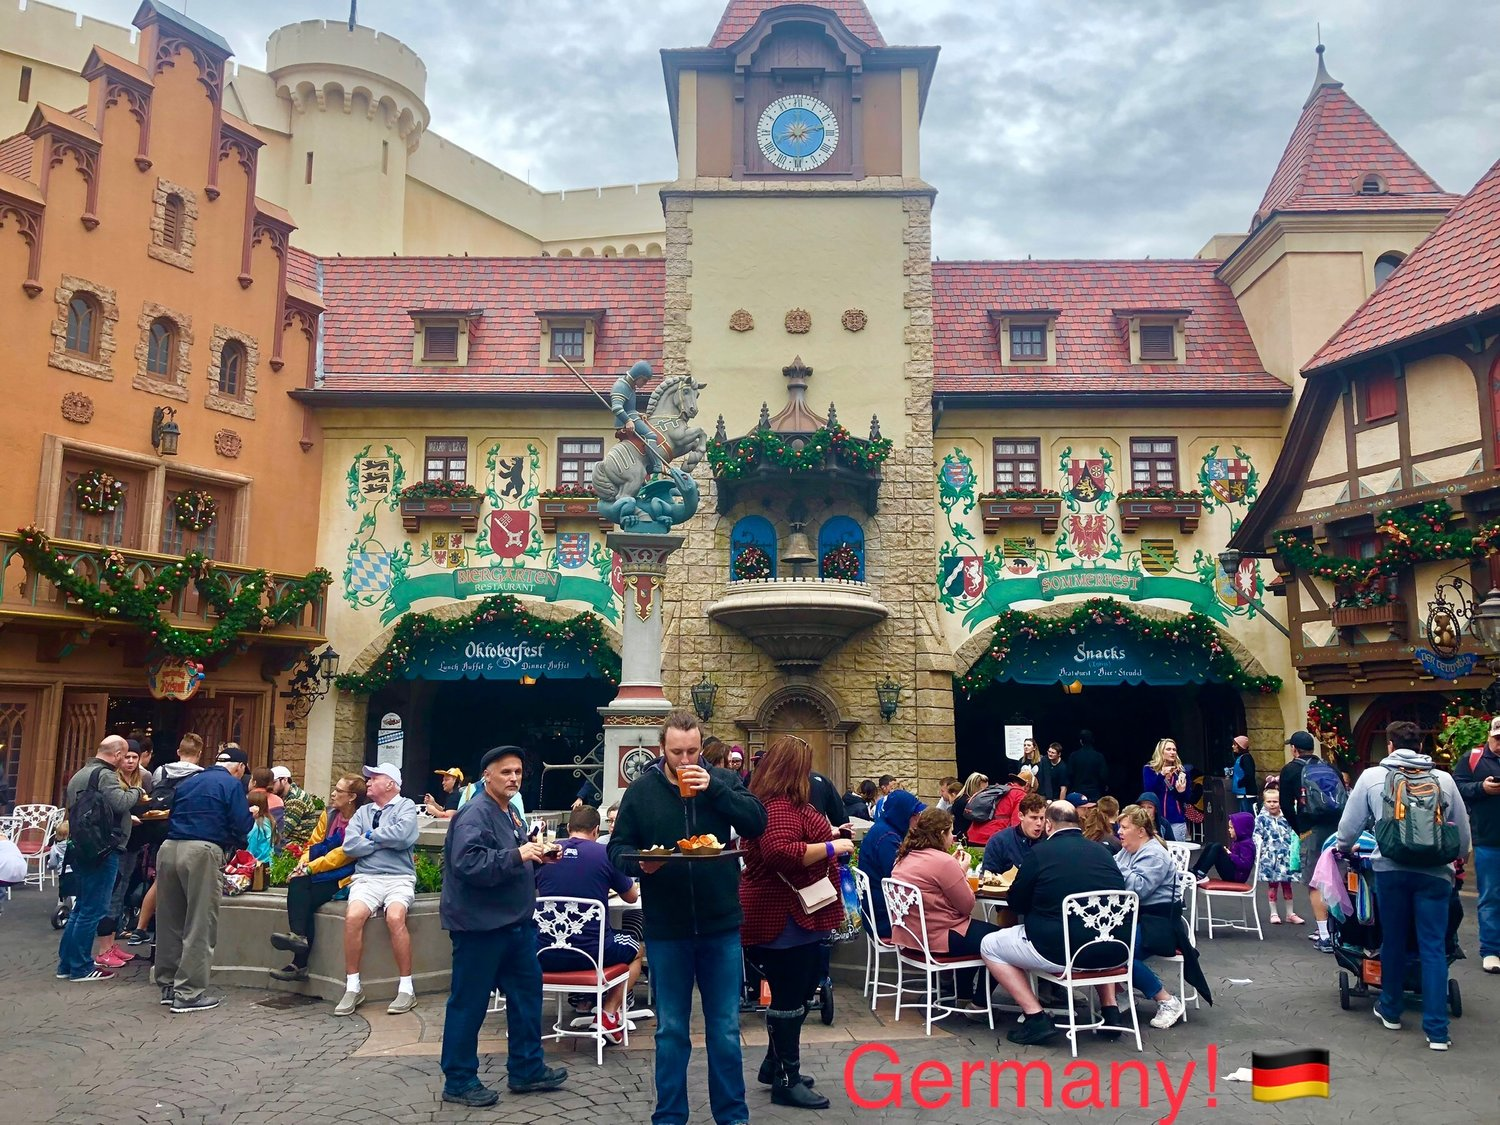 Epcot: Germany